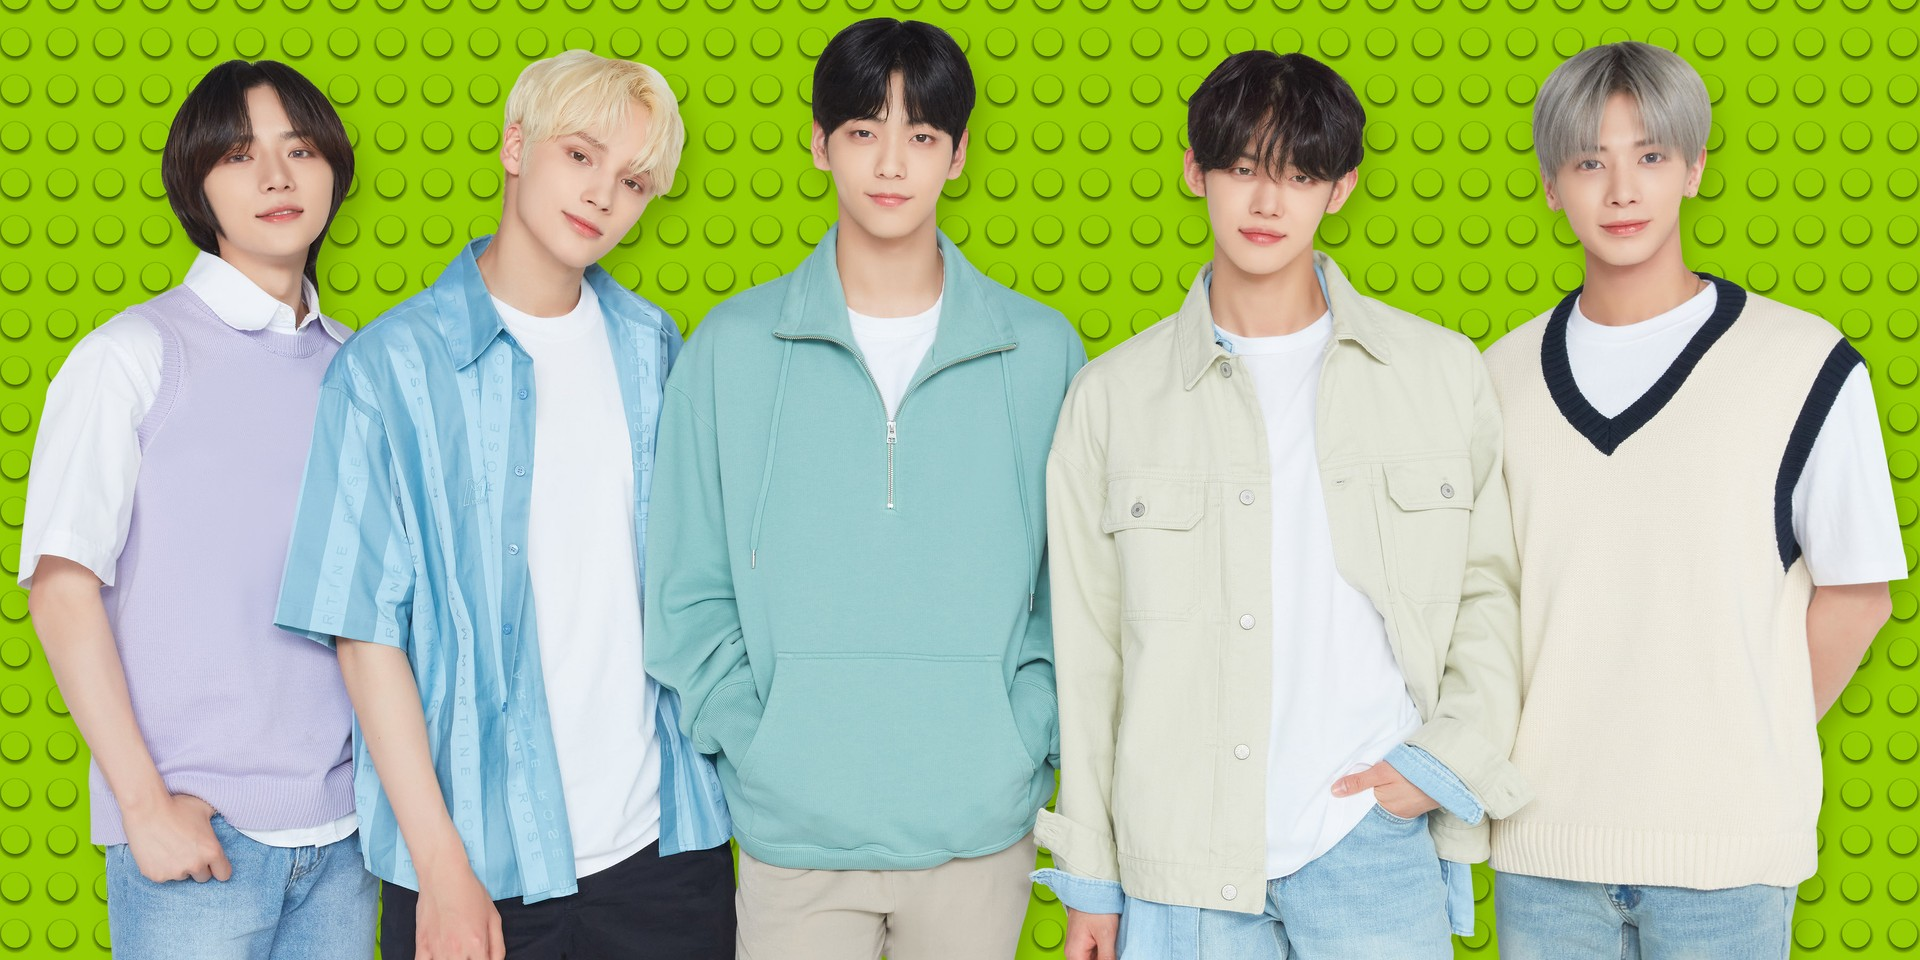 TOMORROW X TOGETHER join BTS as new ambassadors of Philippine telco